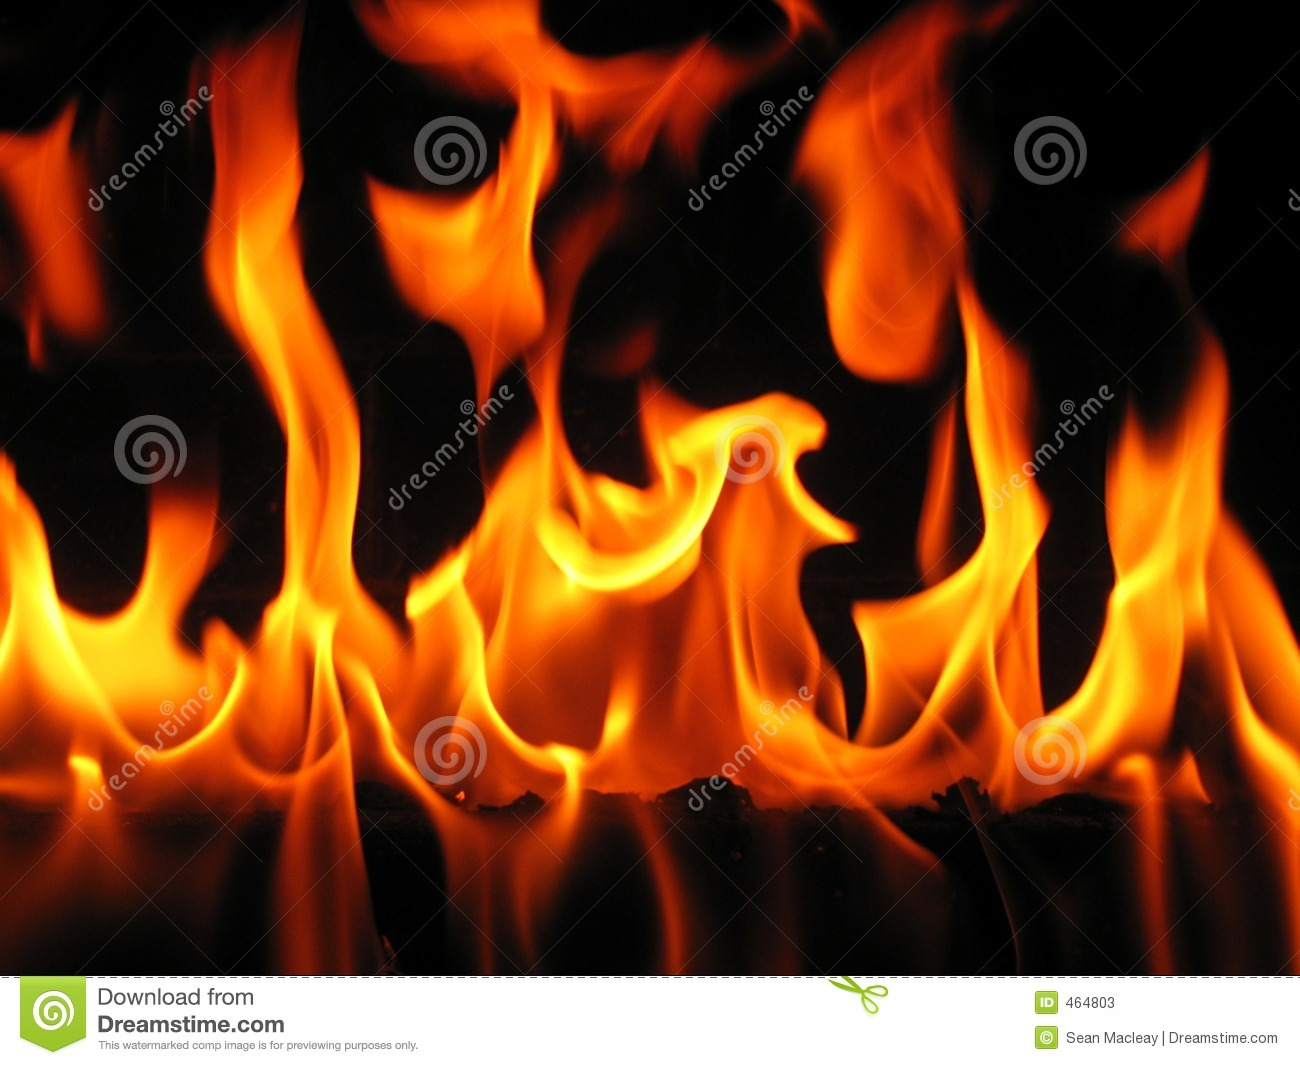 Flames coming from a log